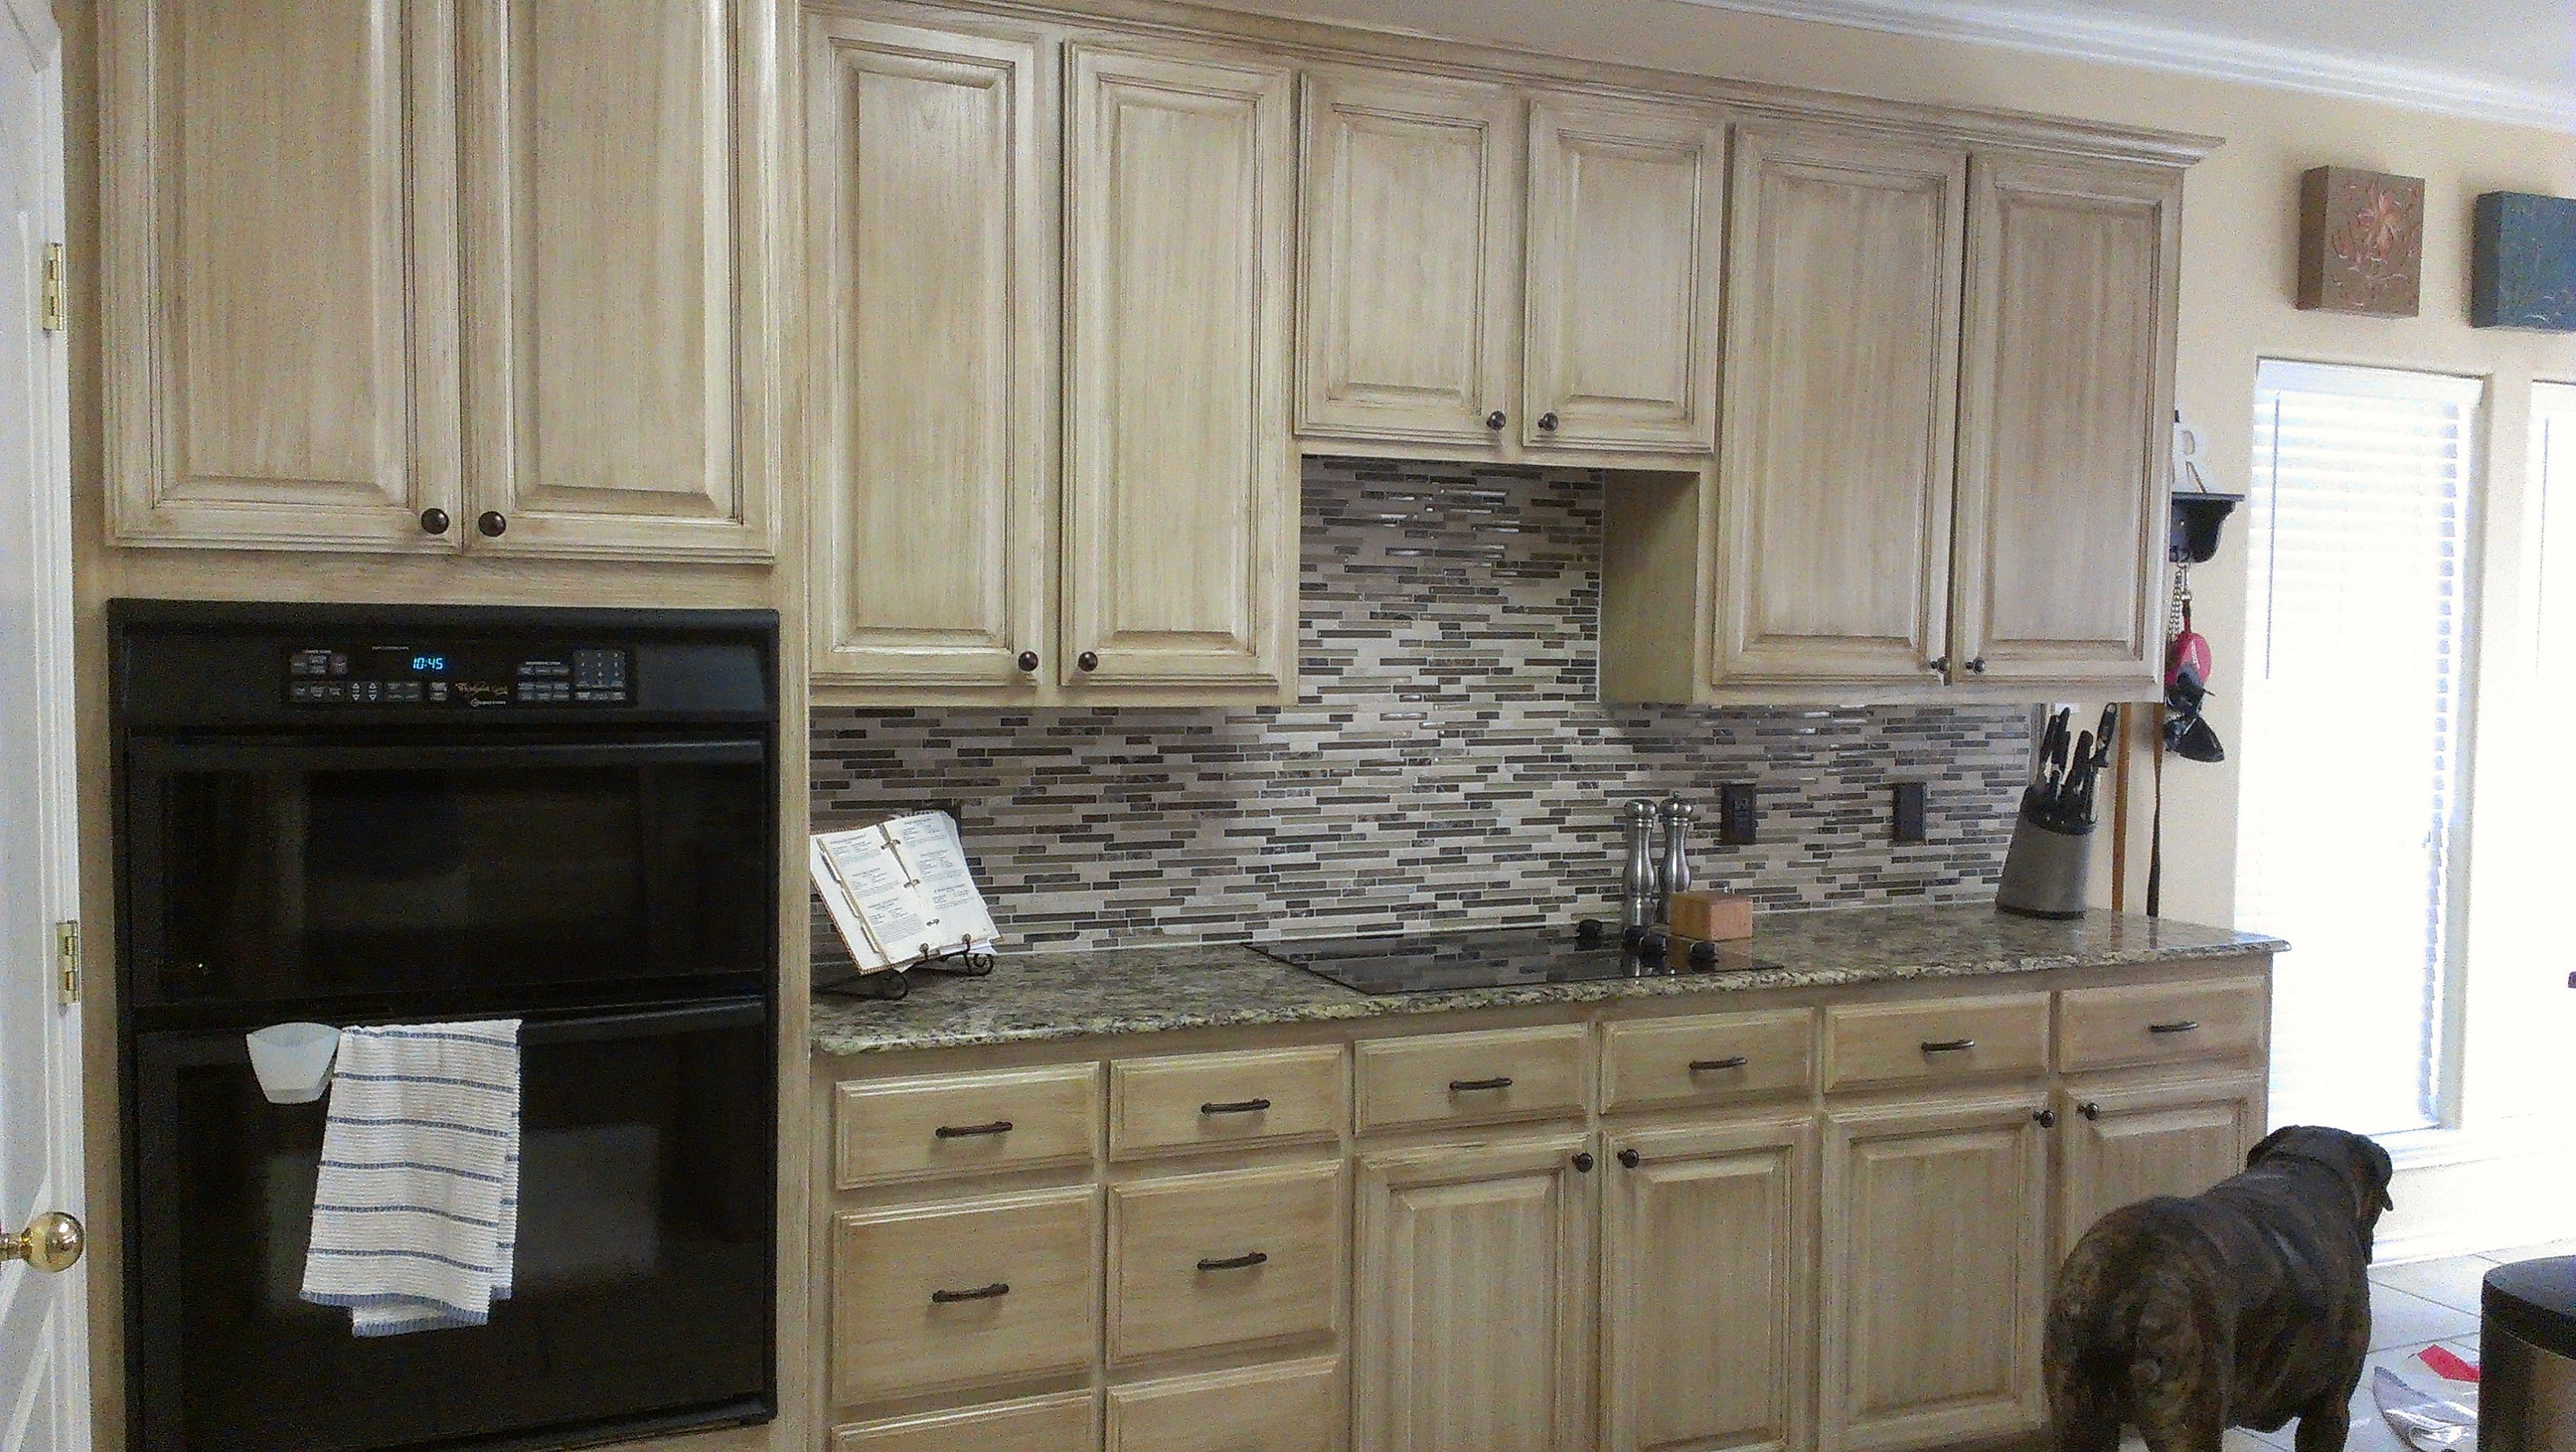 Cabinets Were Done With Rust Oleum Cabinet Transformations In Pure White The Glaze